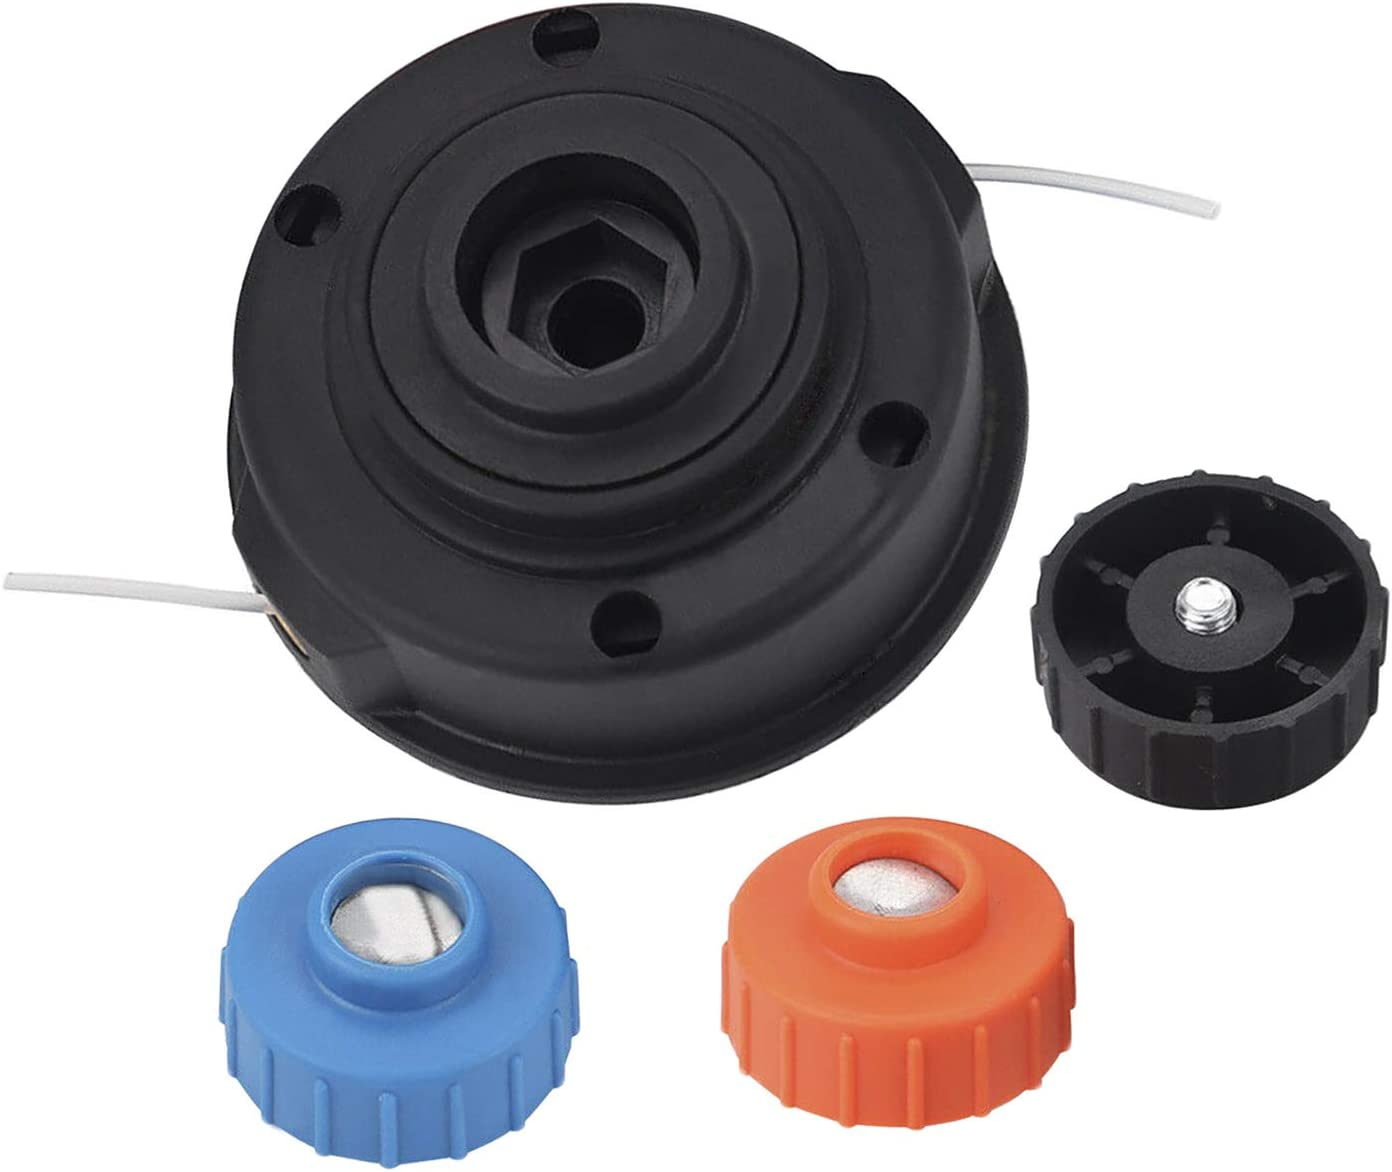 Yieking 000998265 Trimmer Head Bump Feed for Homelite Ryobi fits Homelite ST155 ST165 ST175 ST275 ST285 Ryobi RY30040A RY30040B SS30(RY30040) SS30(RY30043) String Trimmer Replaces DA04591A UP04650A